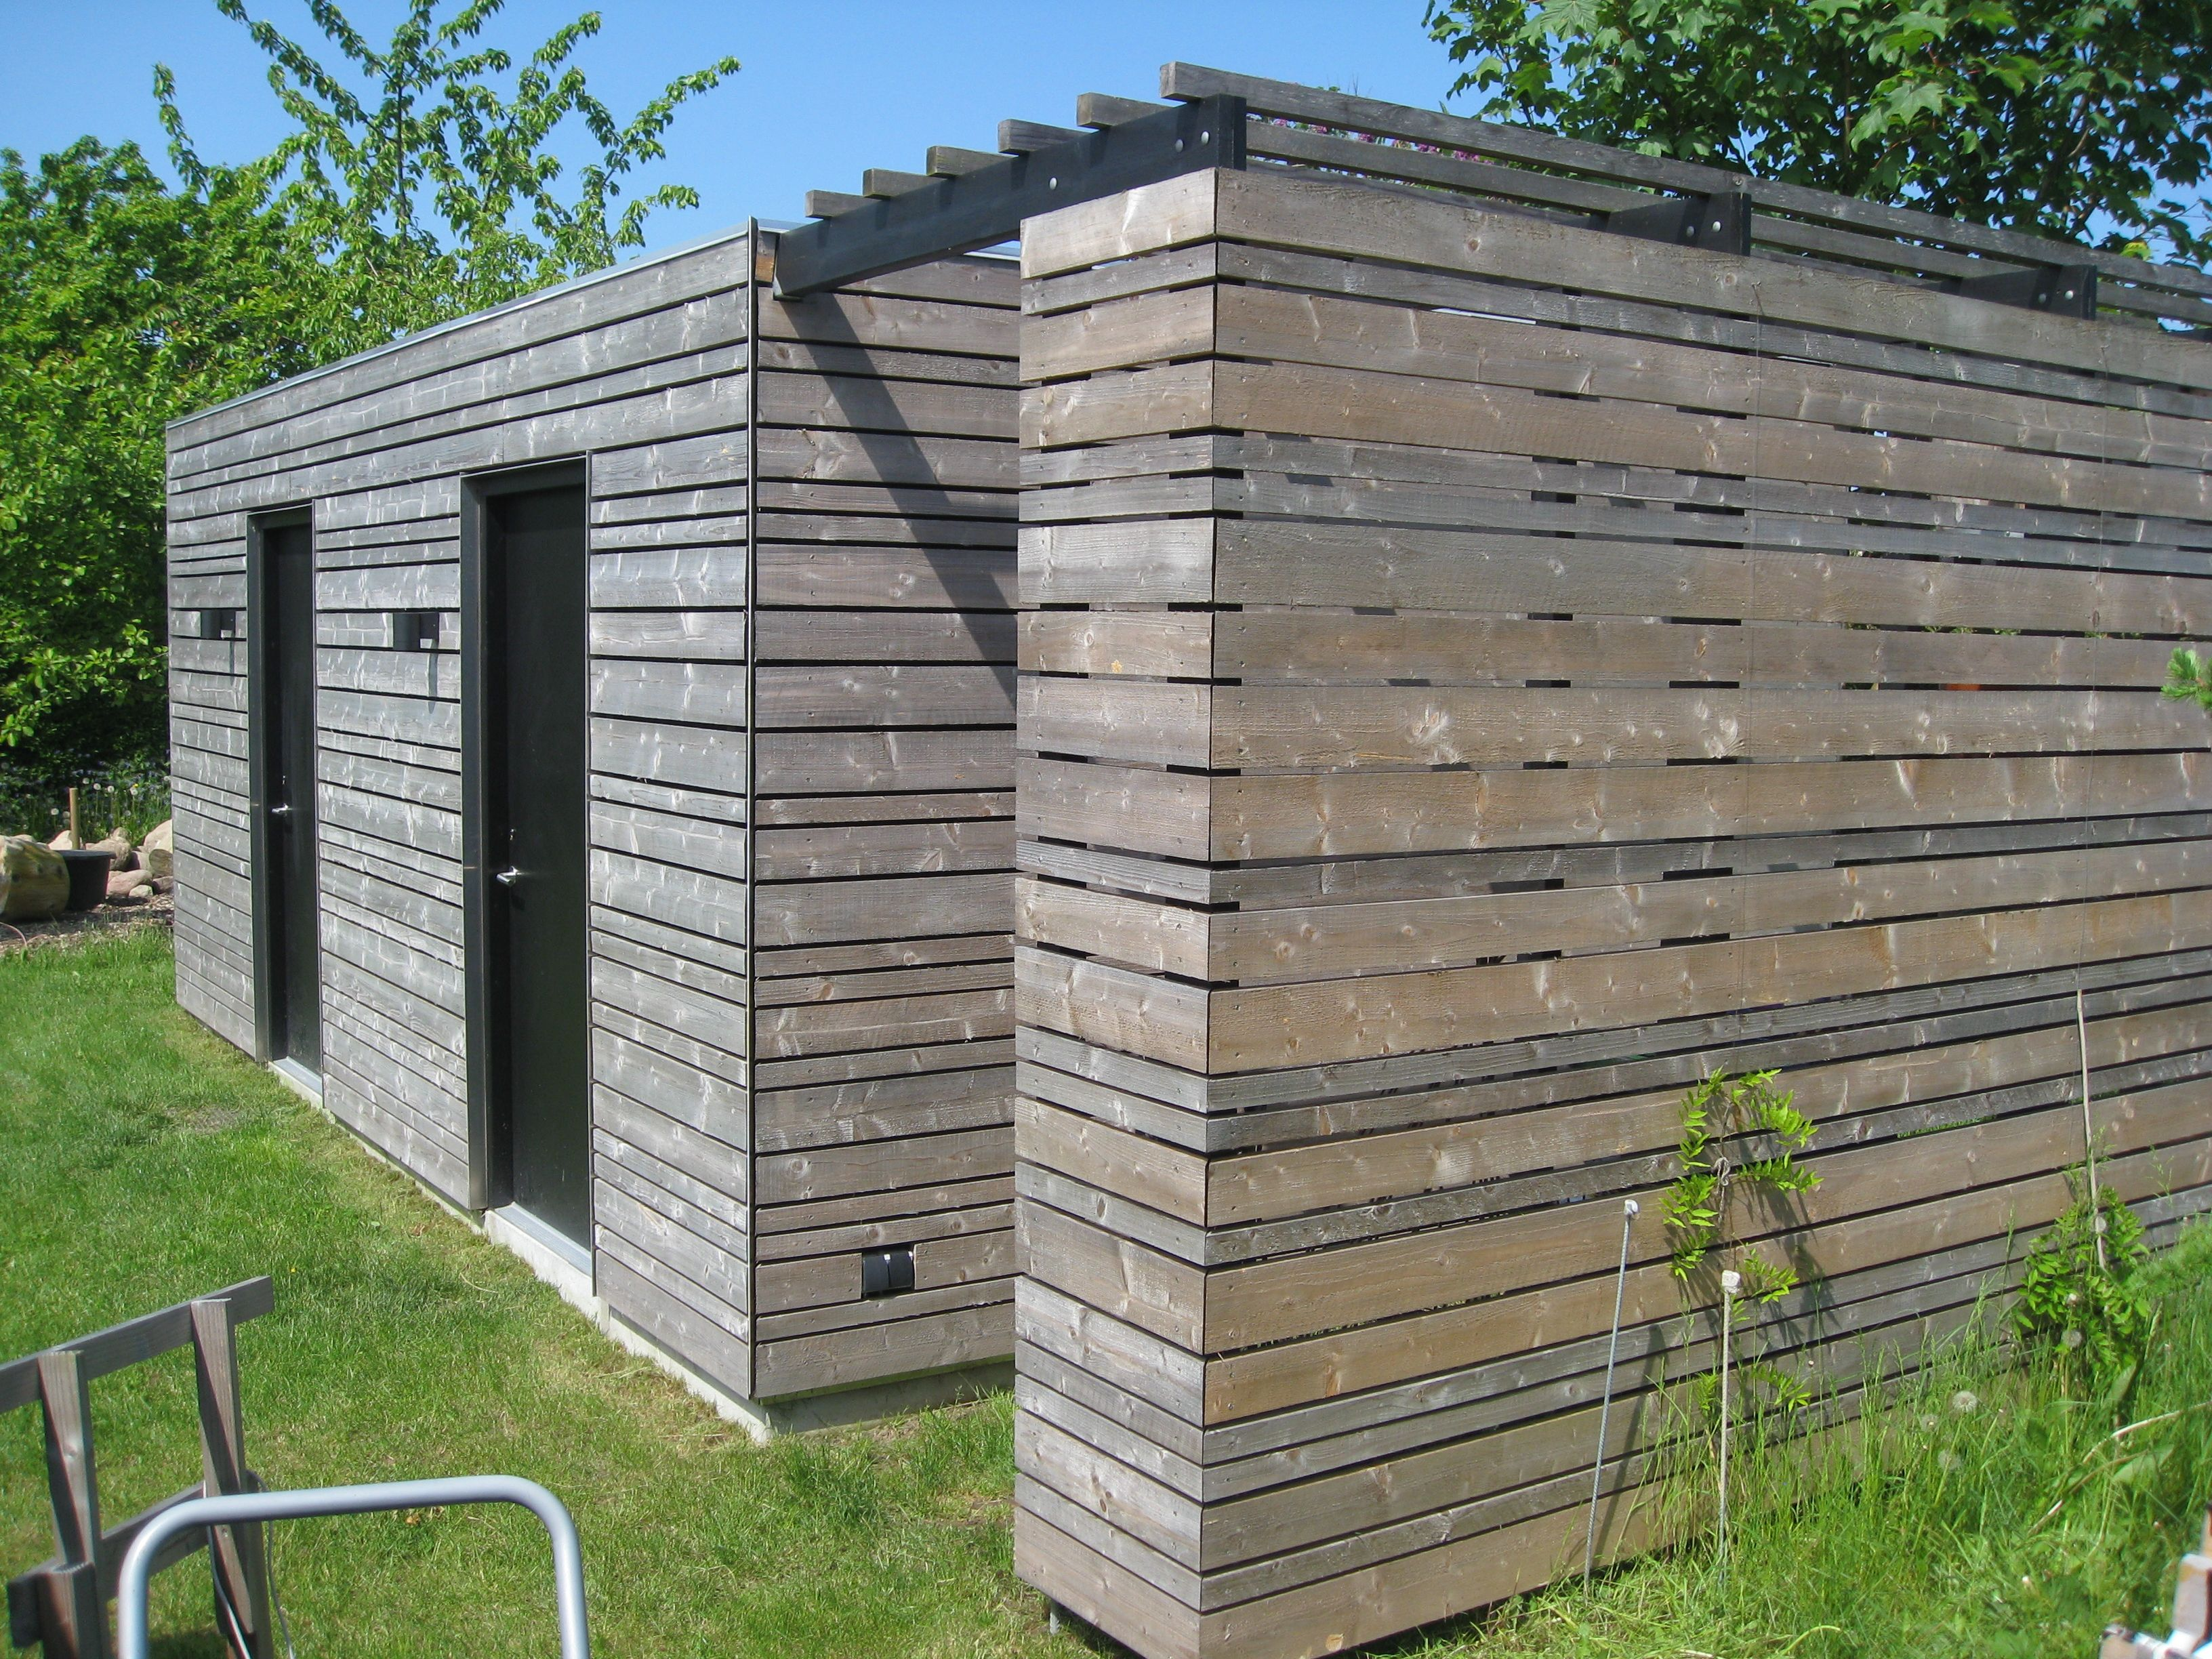 Haus design eingangstor workshop  shed insulated wooden construction untreated spruce